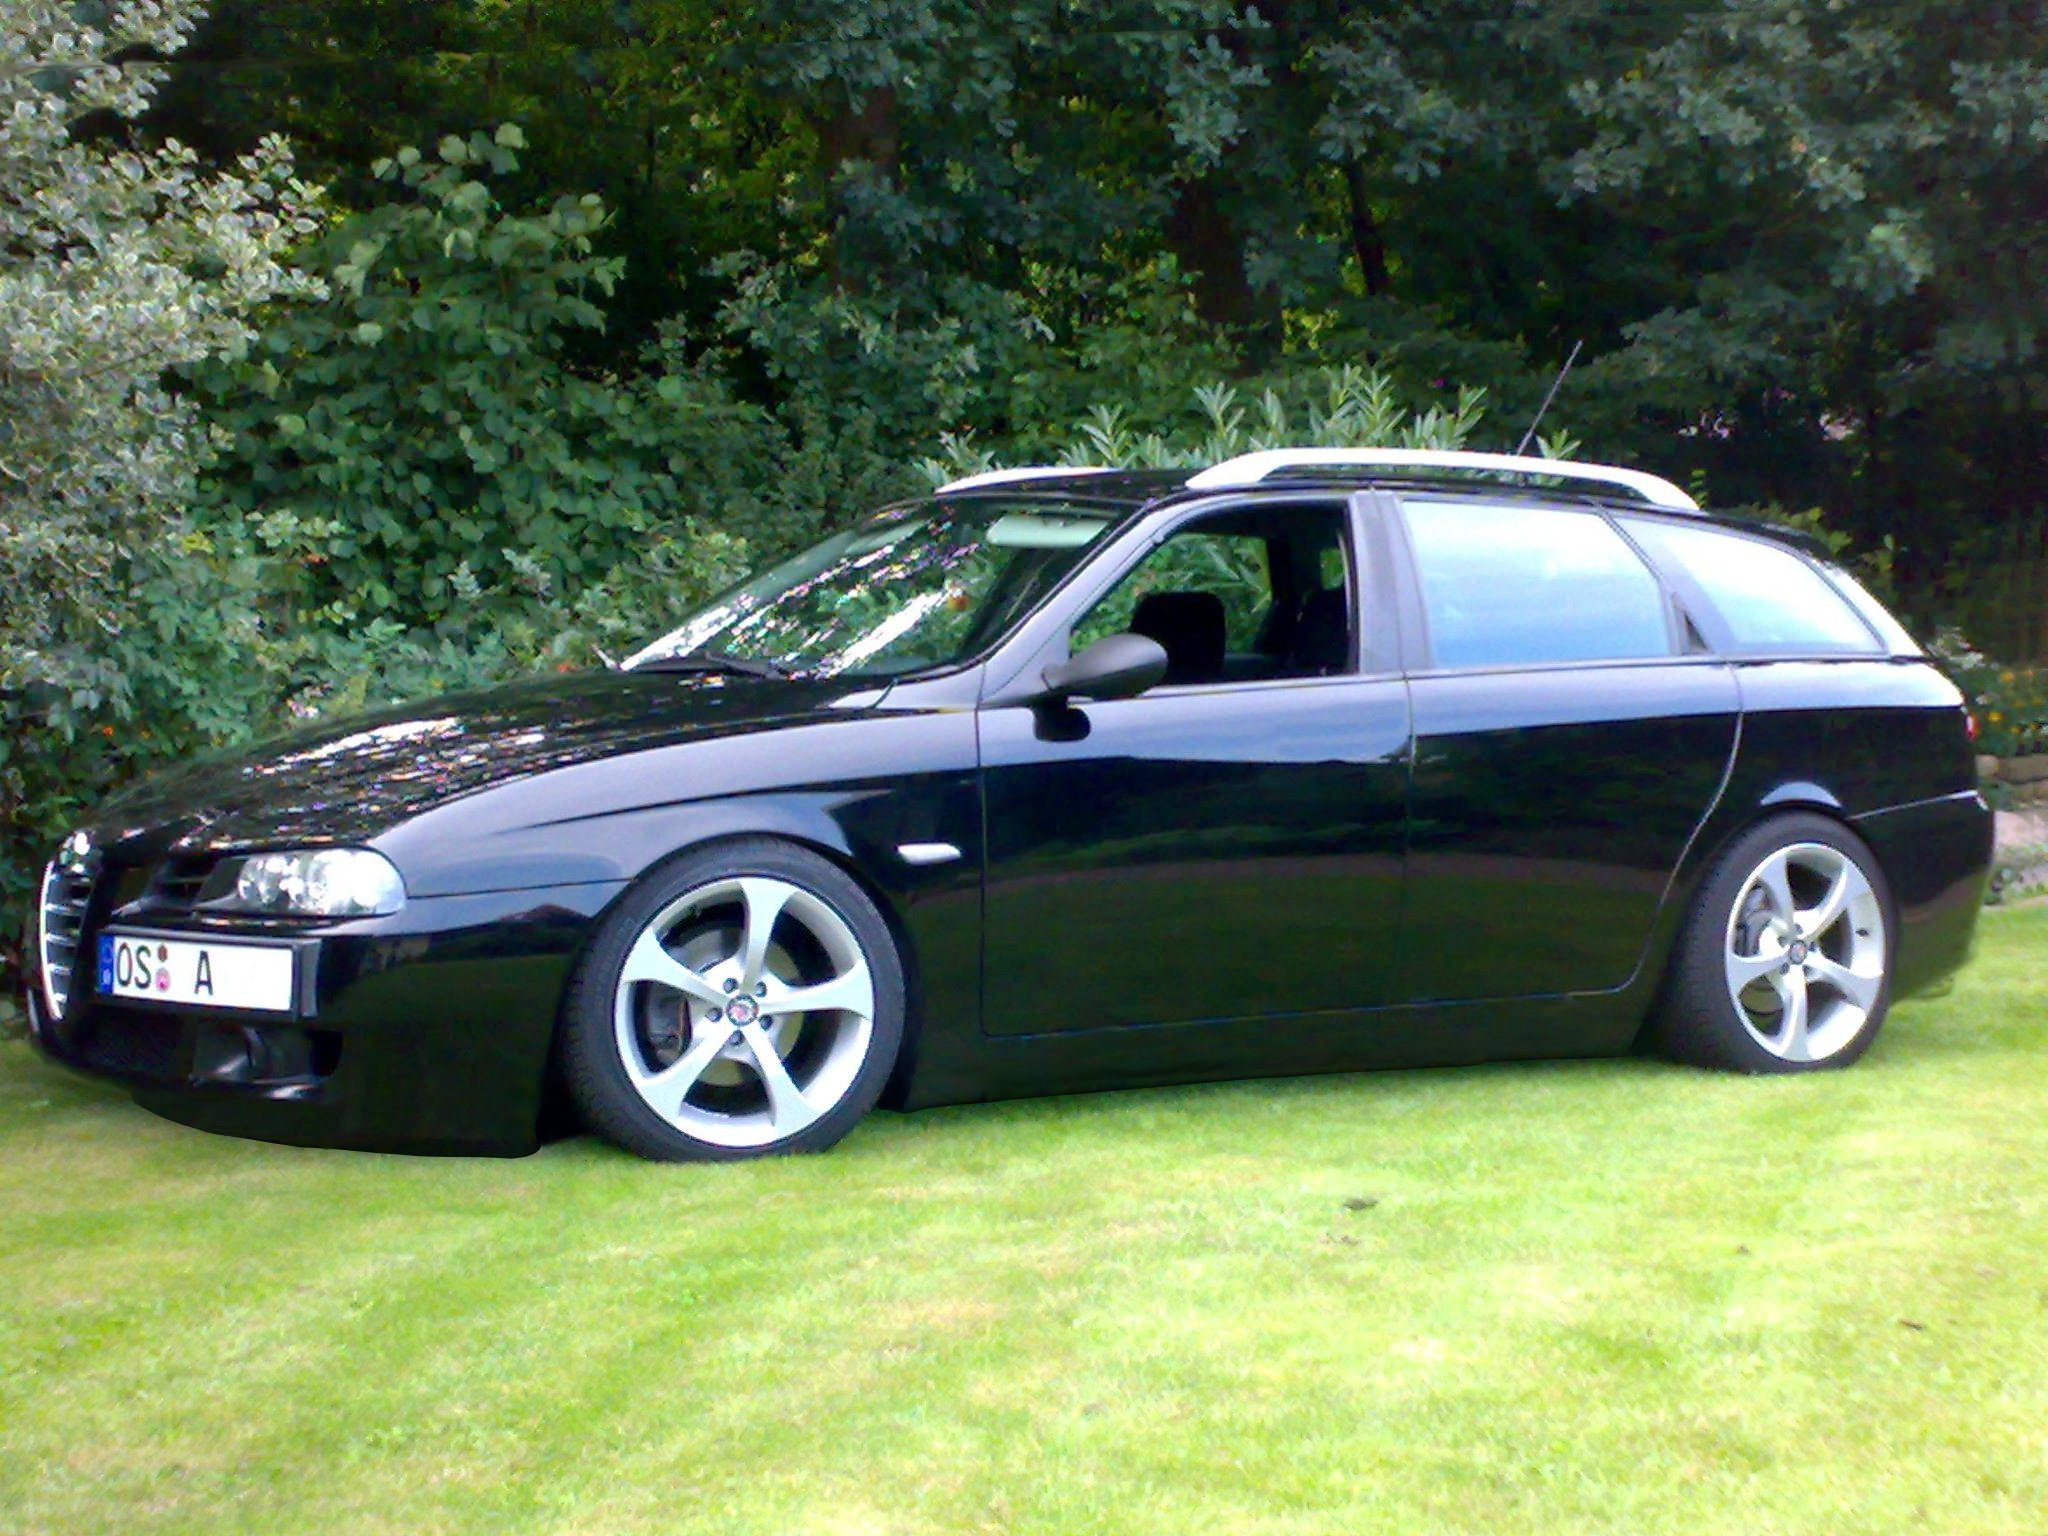 alfa romeo 156 sportwagon tuning images galleries with a bite. Black Bedroom Furniture Sets. Home Design Ideas